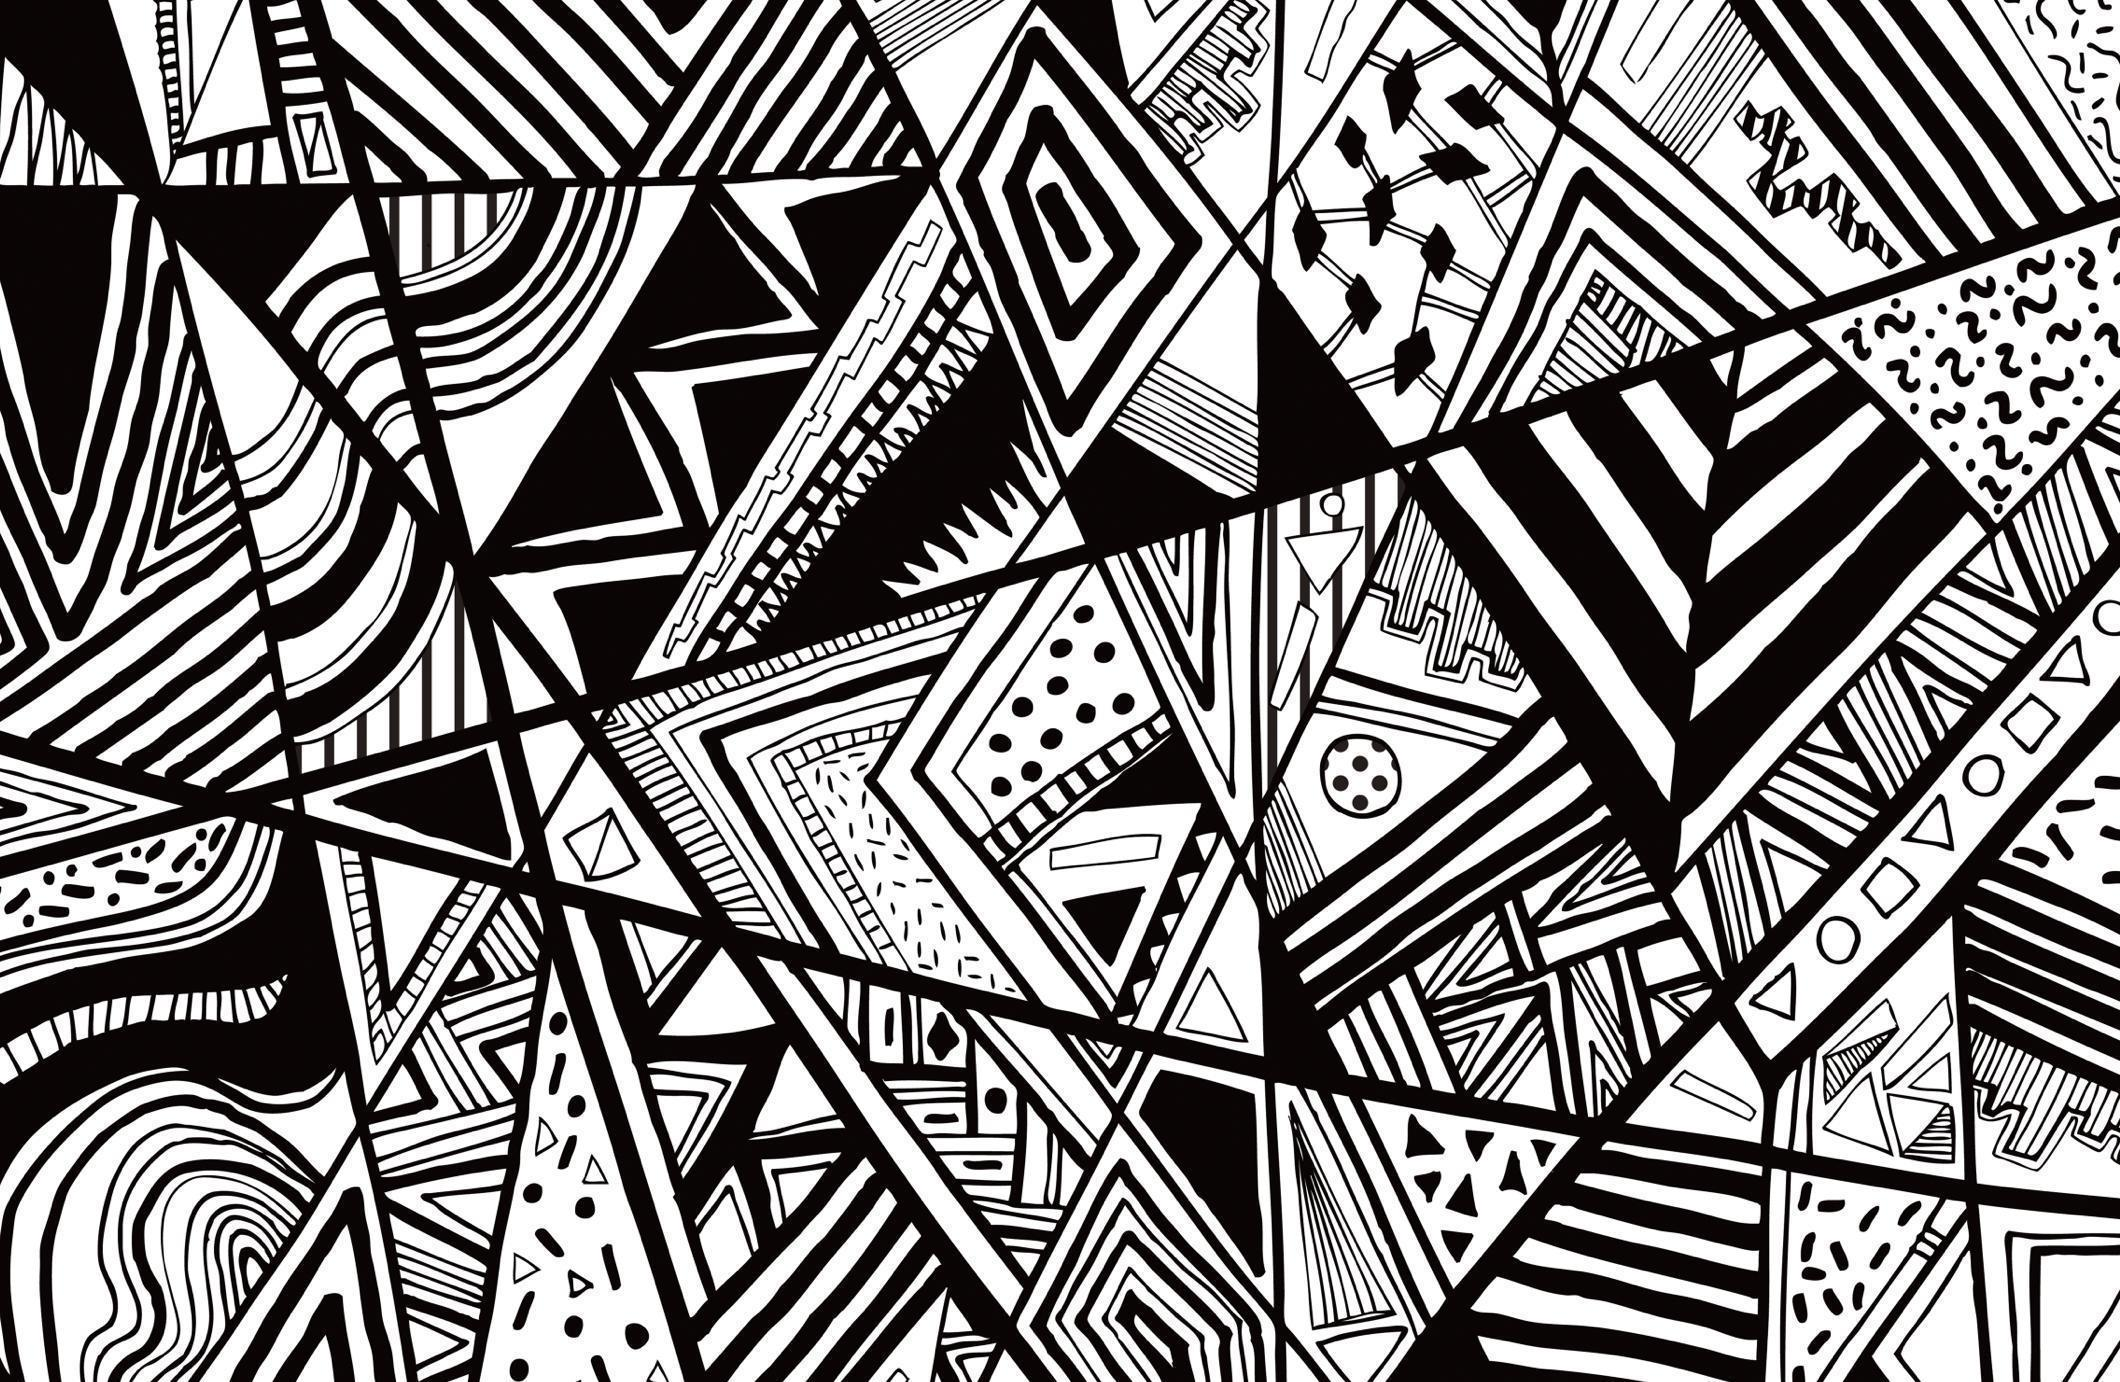 Line Drawing Backgrounds : Black and white abstract backgrounds wallpaper cave